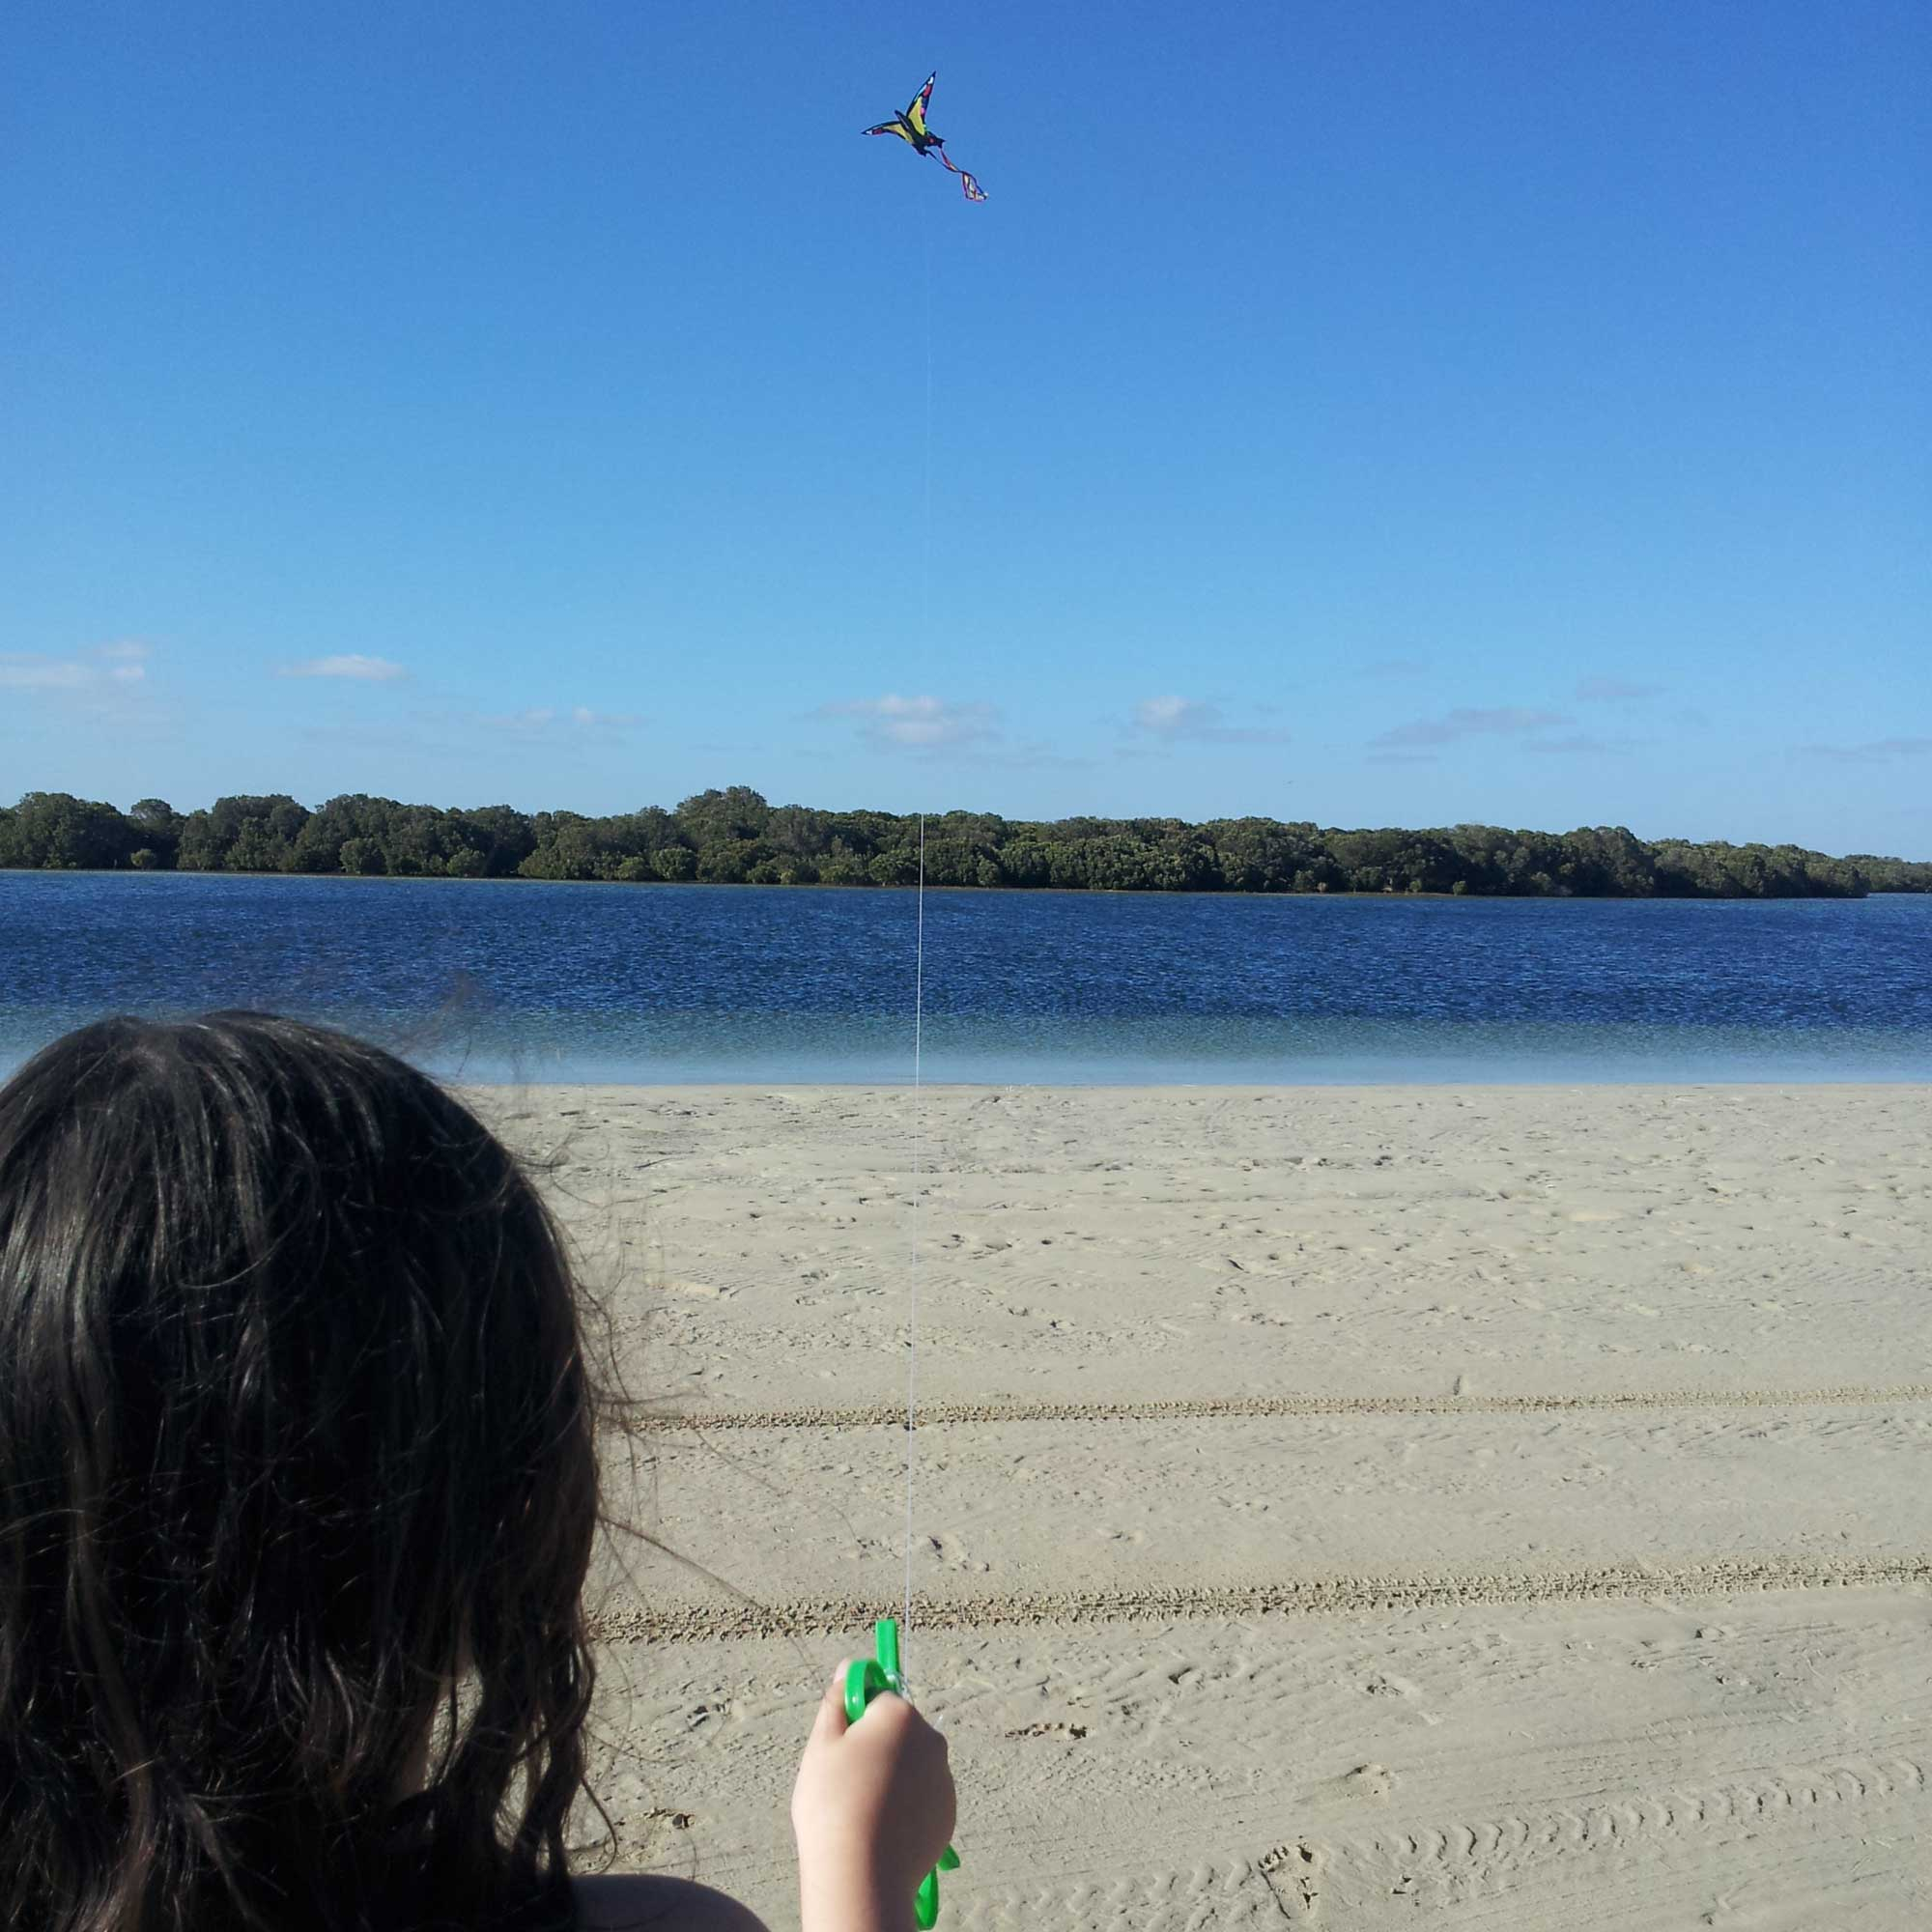 Tookii things to do with kids with her kite one of the summer activities for kids